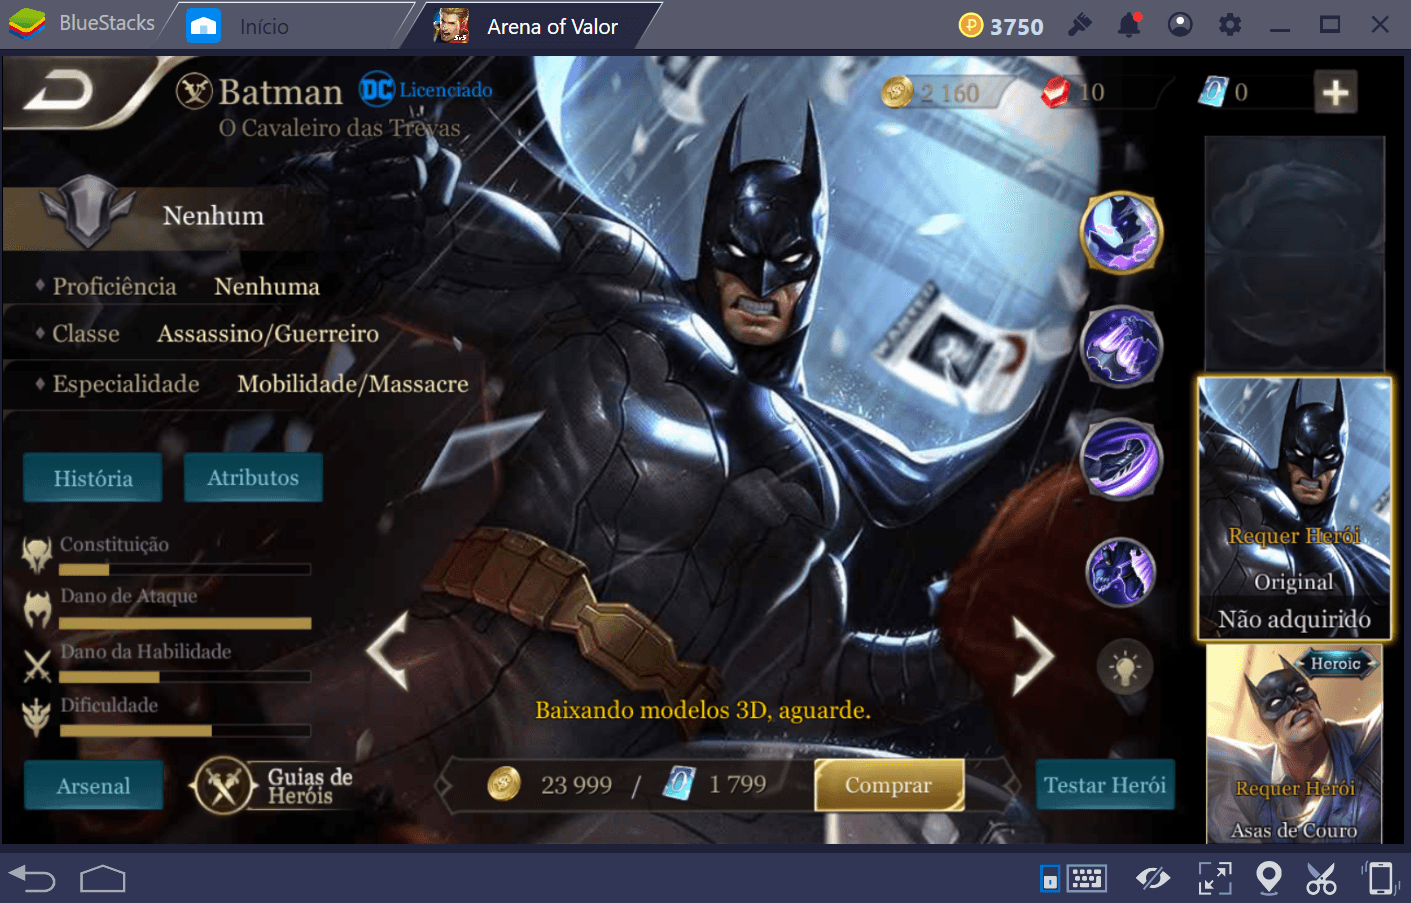 Guia de Assassinos em Arena of Valor